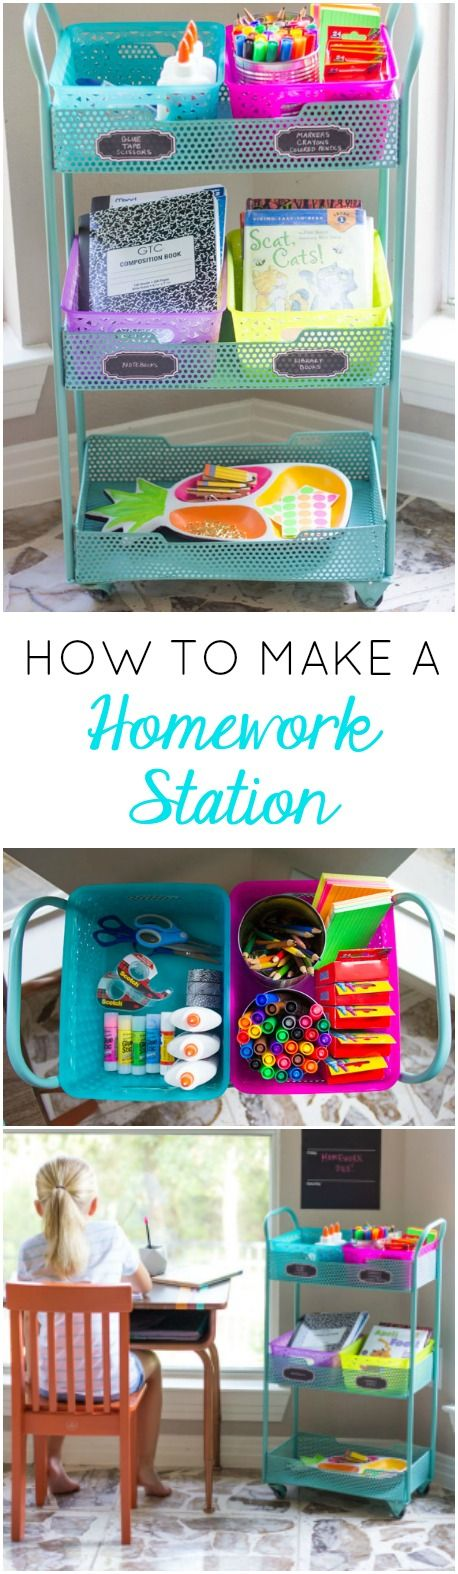 Back To School DIY Homework Stations That Will Make Your Kids Want To Study! - The Cottage Market